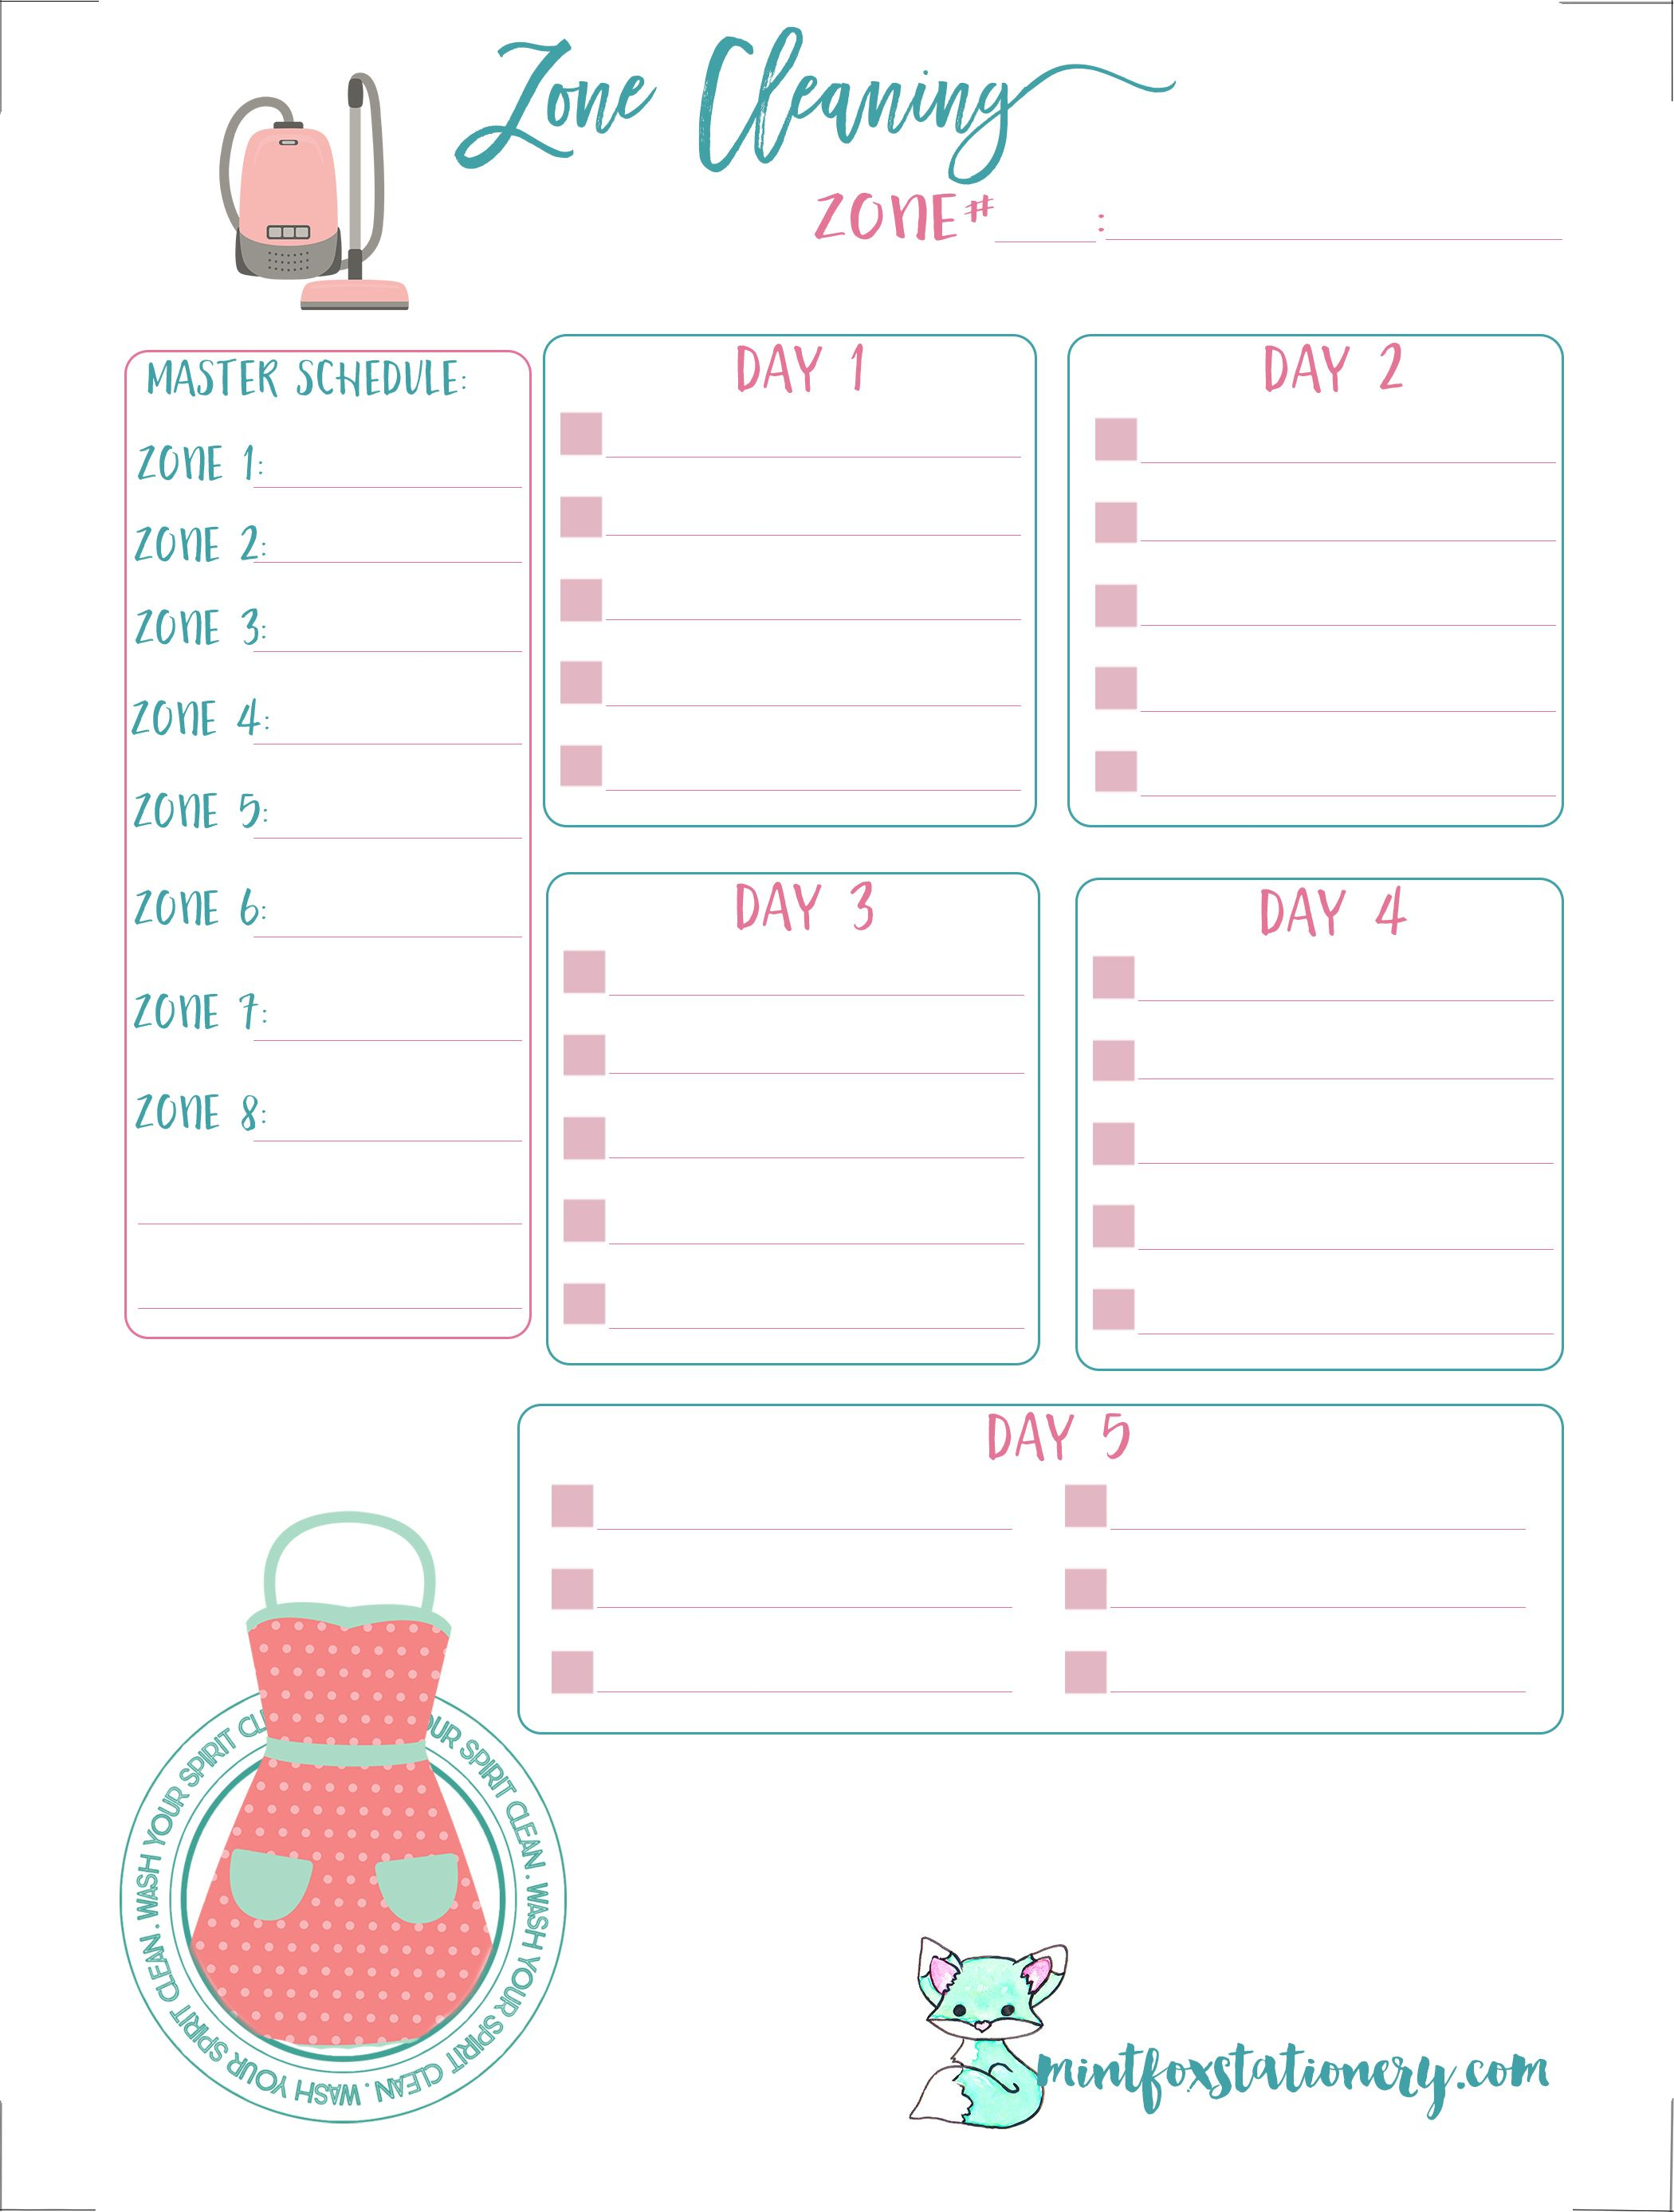 photograph relating to Happy Planner Printable identified as Absolutely free Printable Joyful Planner Zone Cleansing Add in opposition to